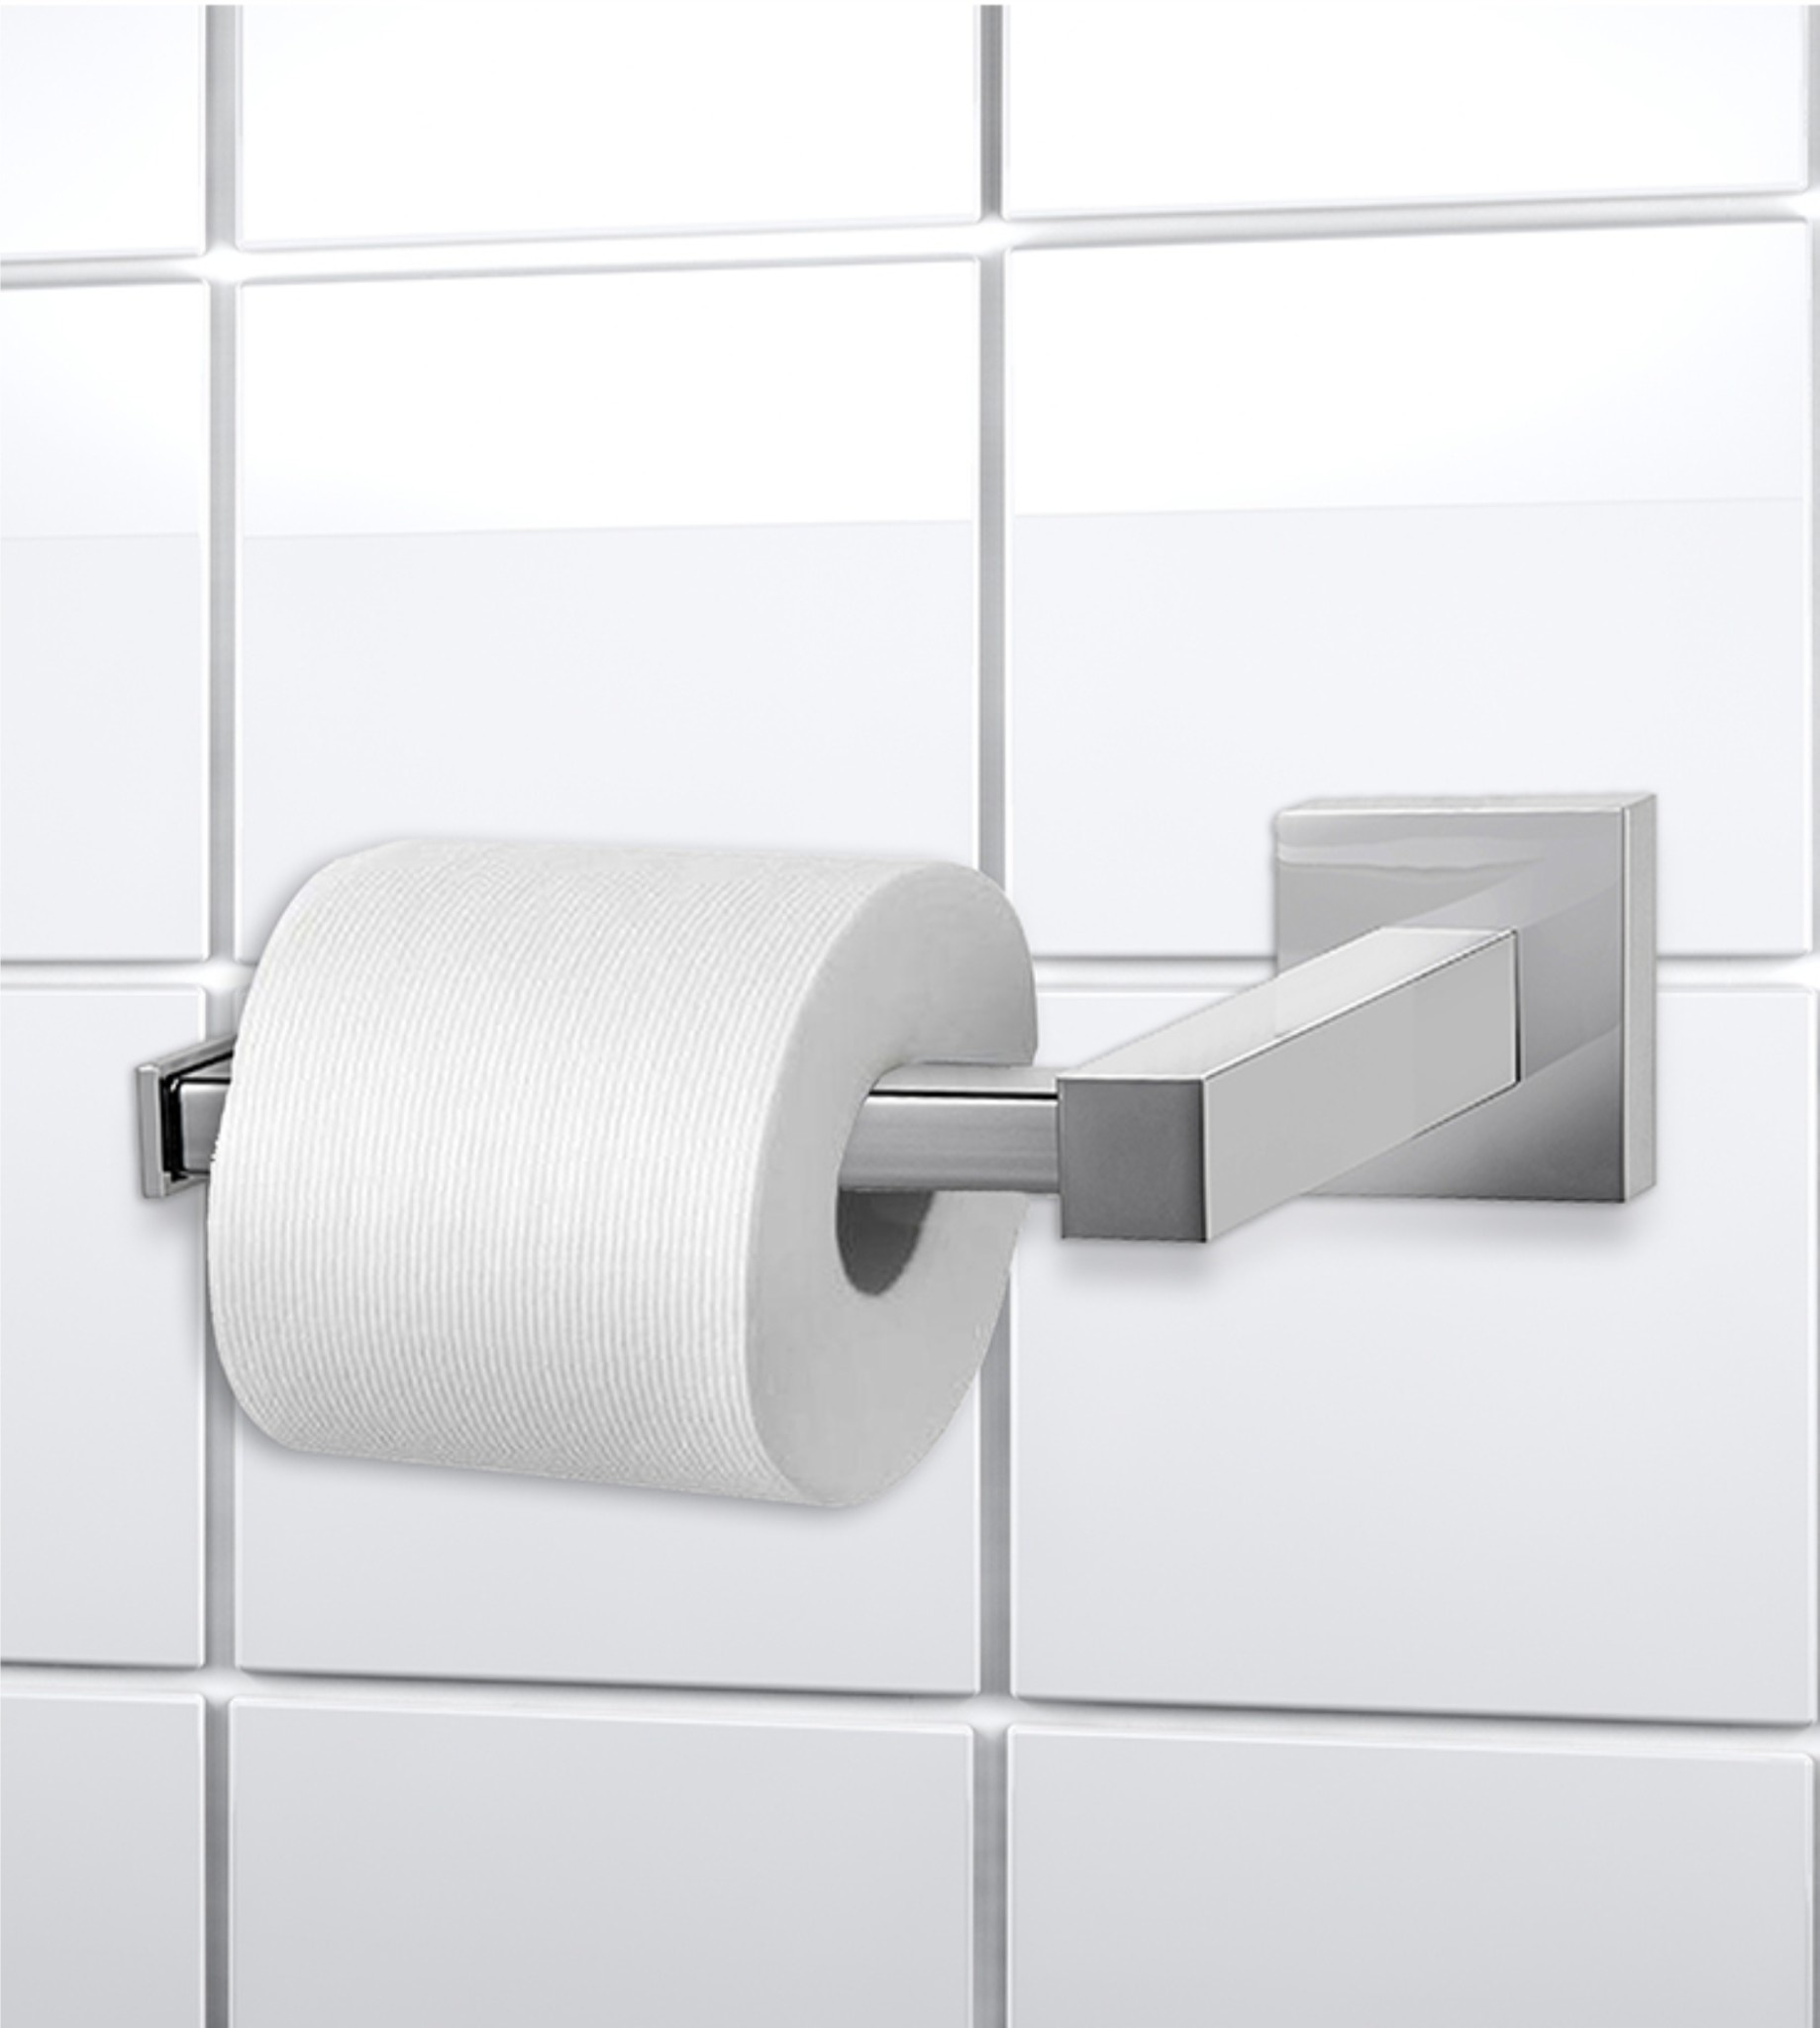 Lauren Taylor Square Stainless Steel Wall Mounted Toilet Paper Holder 6x3x3 Mp10 Oxford Mills Home Fashion Factory Outlet And Beddington S Bed Bath